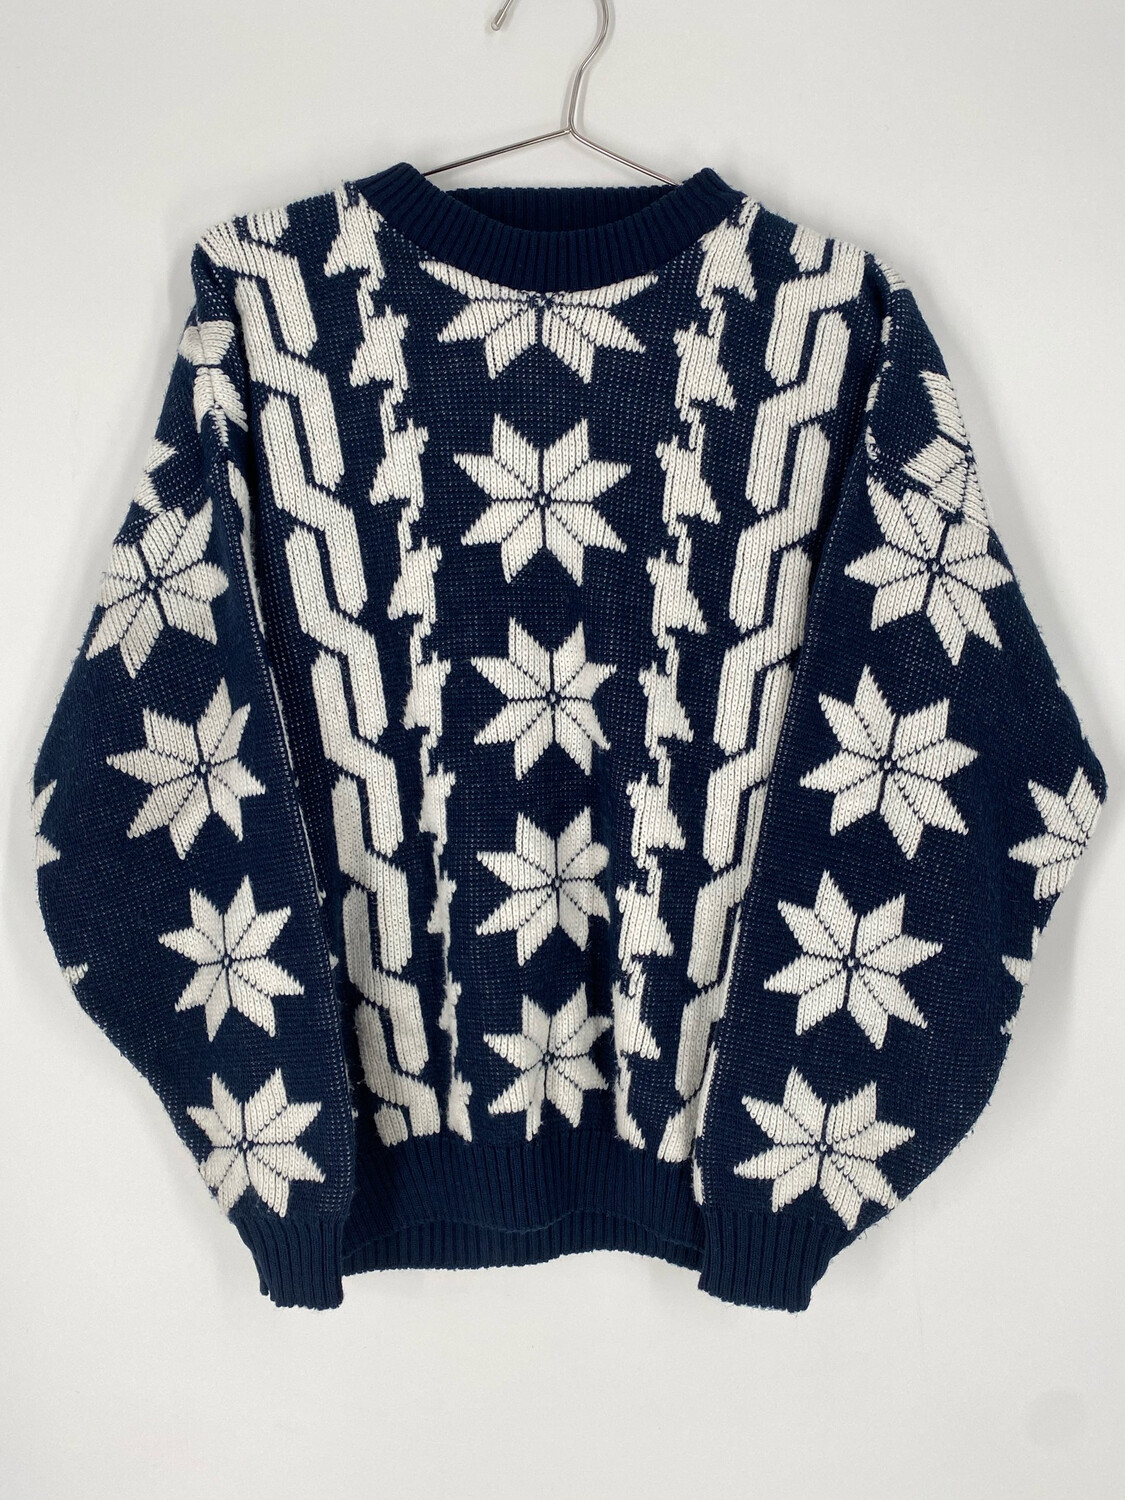 Cabin Creek Vintage Printed Sweater Size L